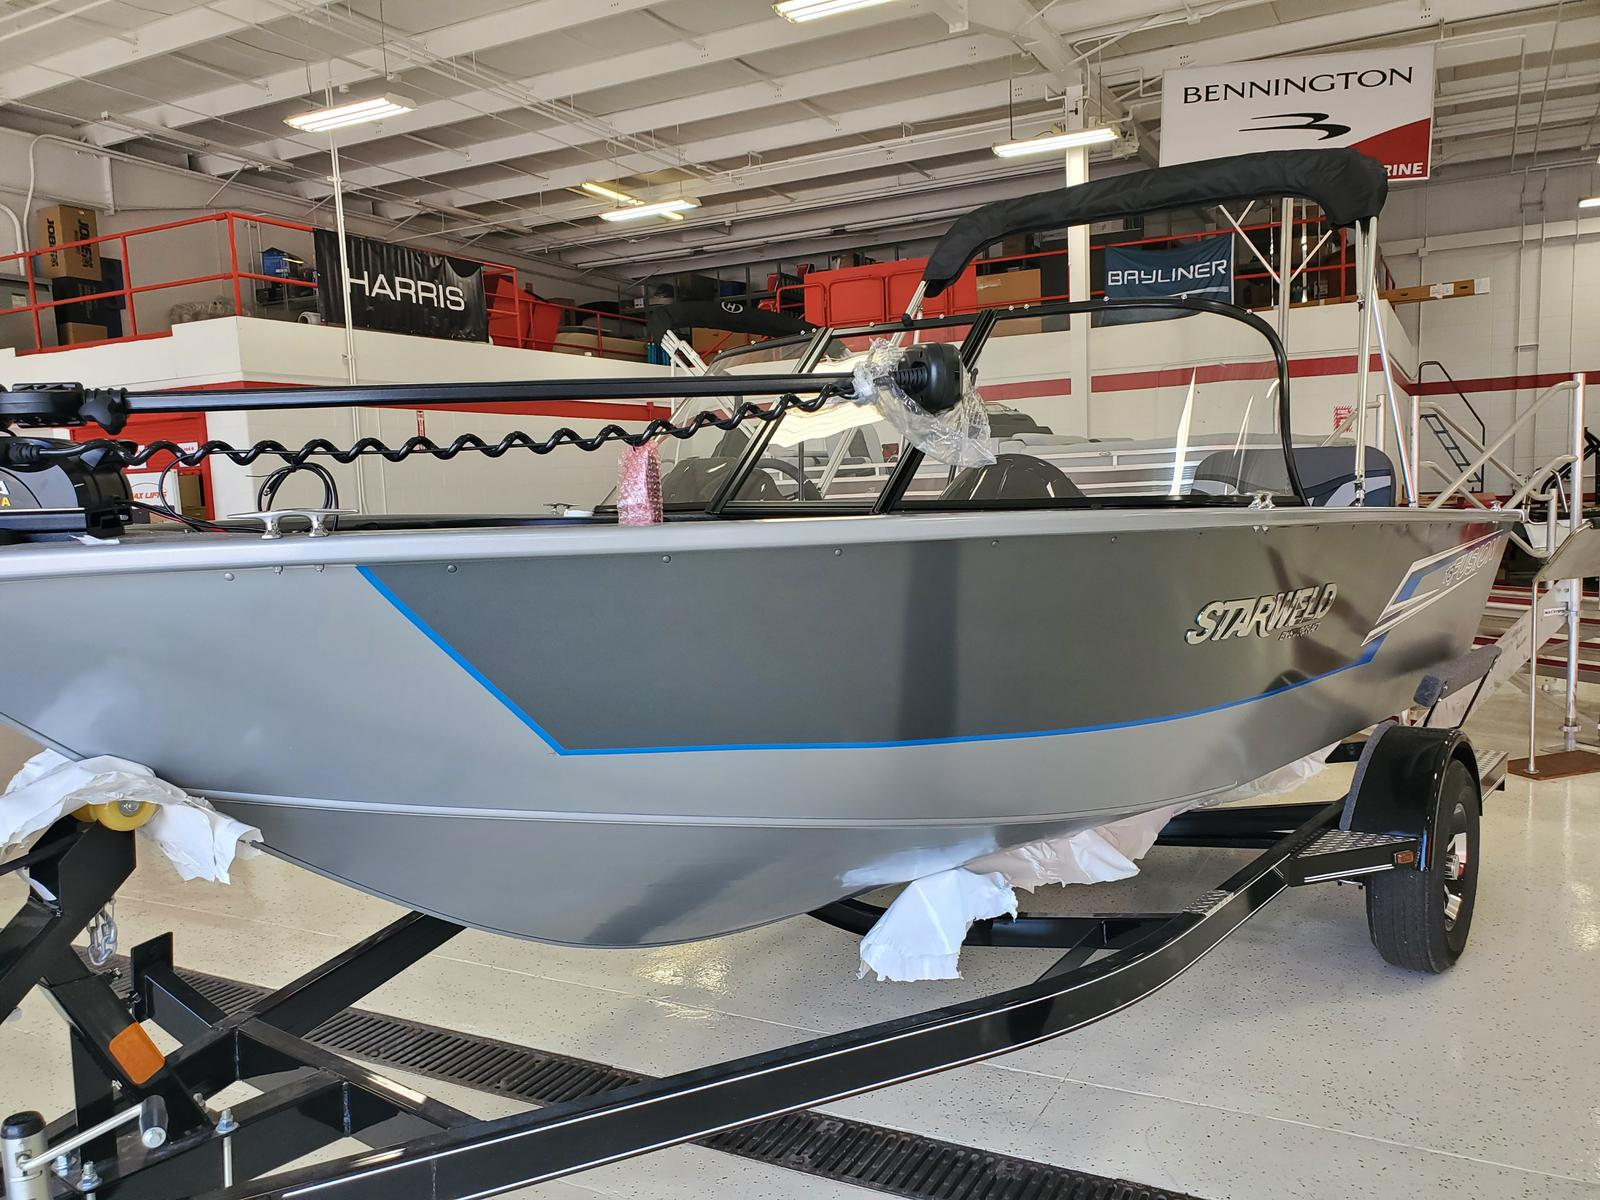 2021 Starweld boat for sale, model of the boat is Fusion 18 DC & Image # 2 of 11